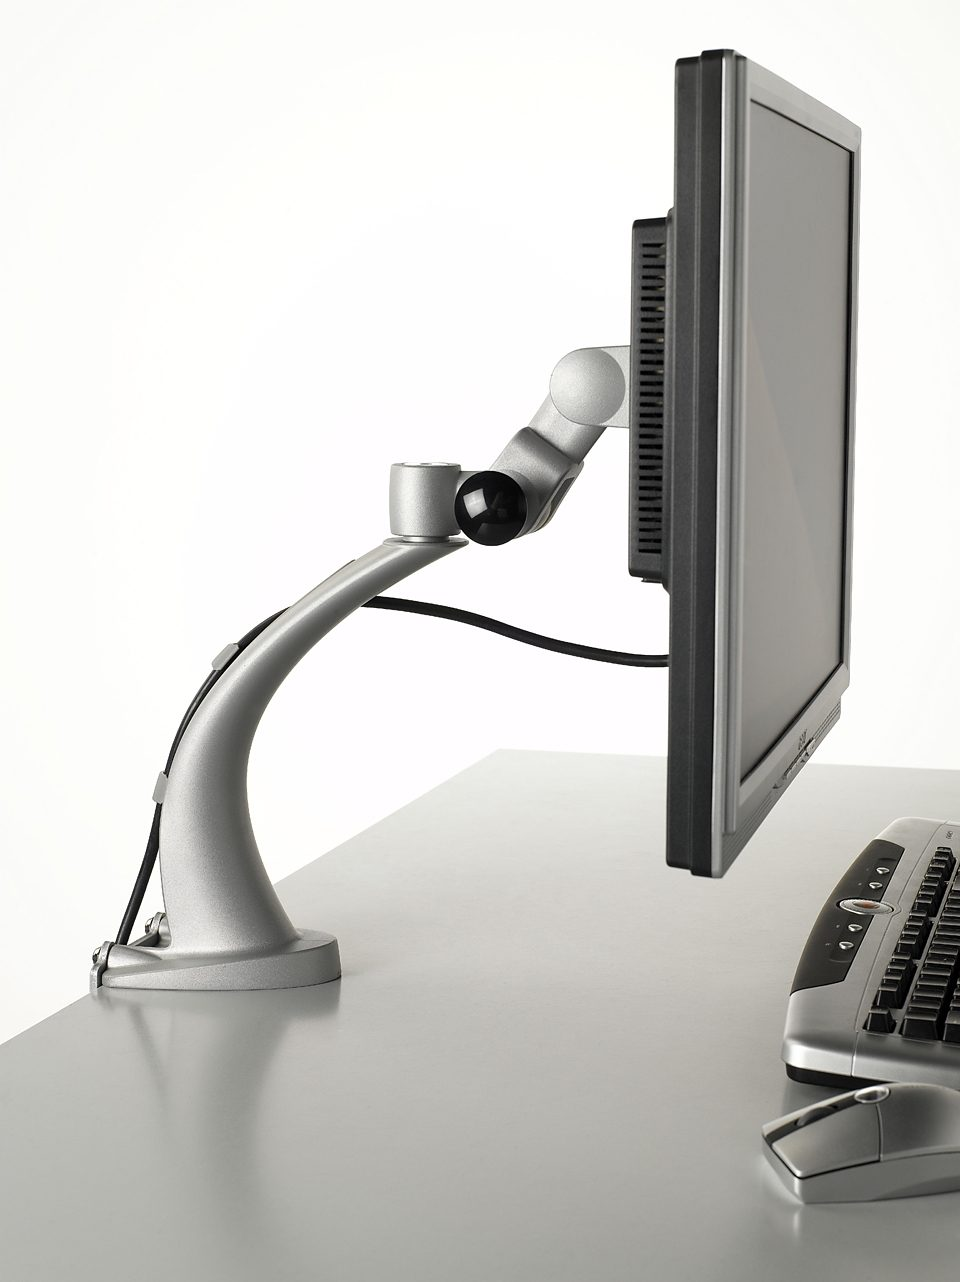 EXPONENT Monitorhalterung »DELUXE Monitor Arm«